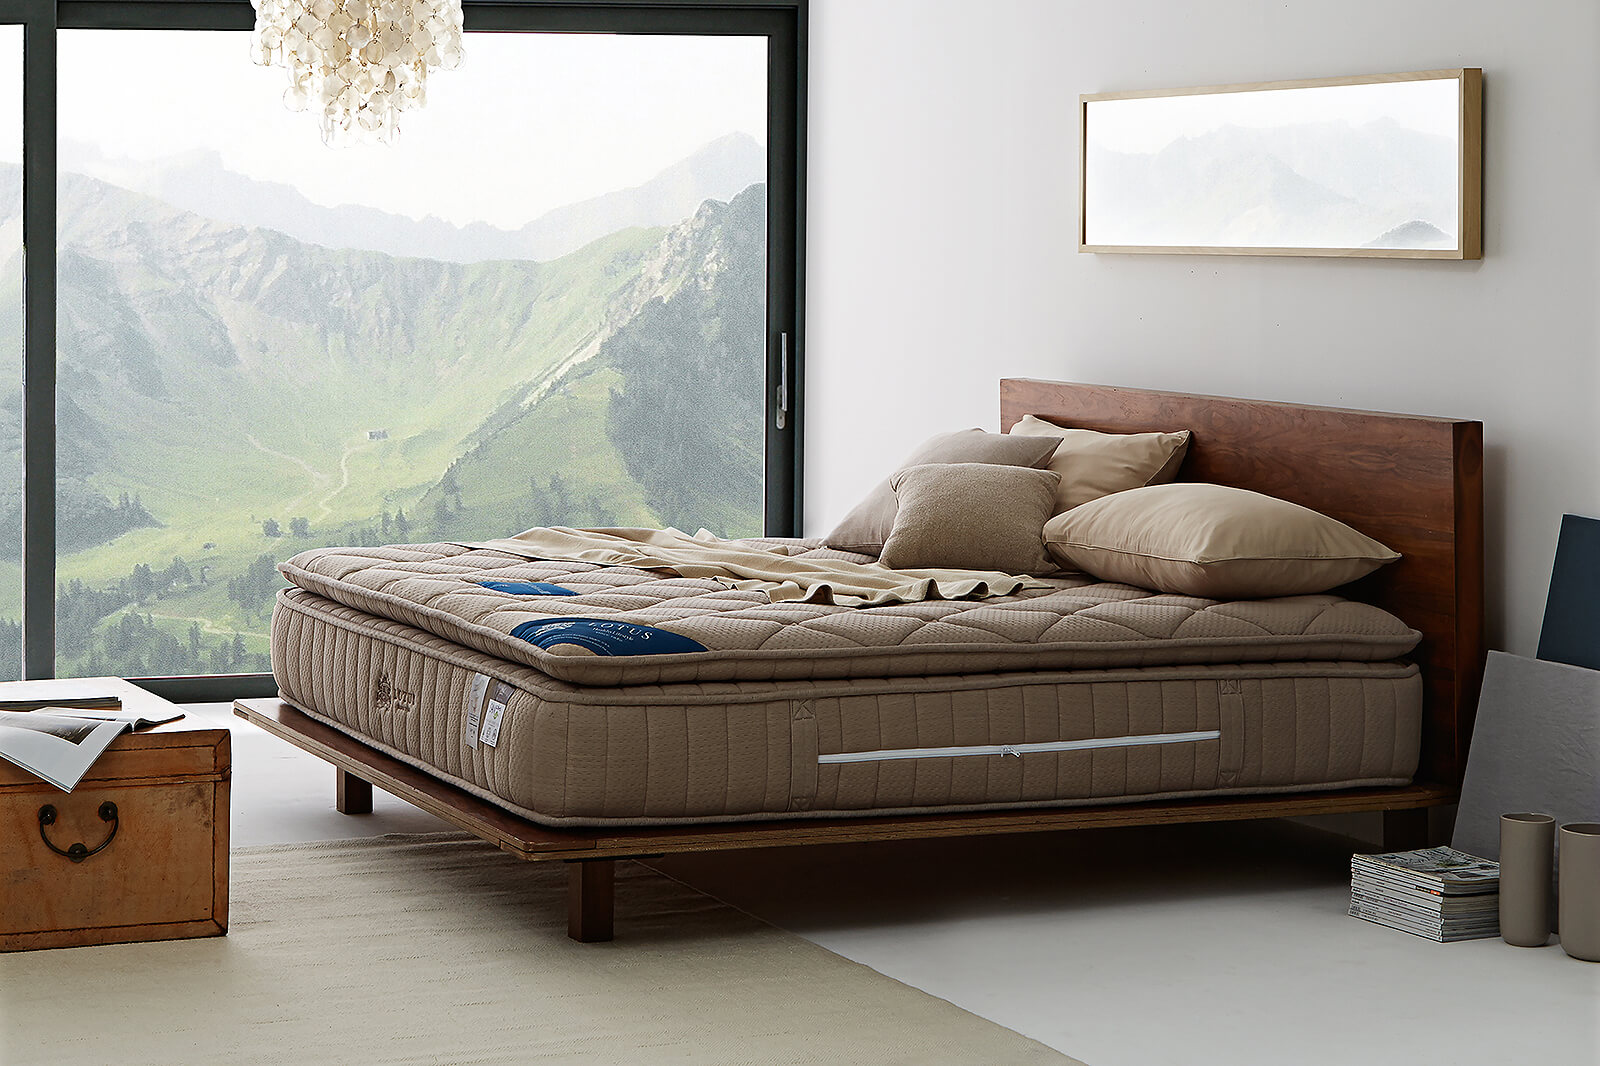 Lotus Mattress Marshall Deluxe III